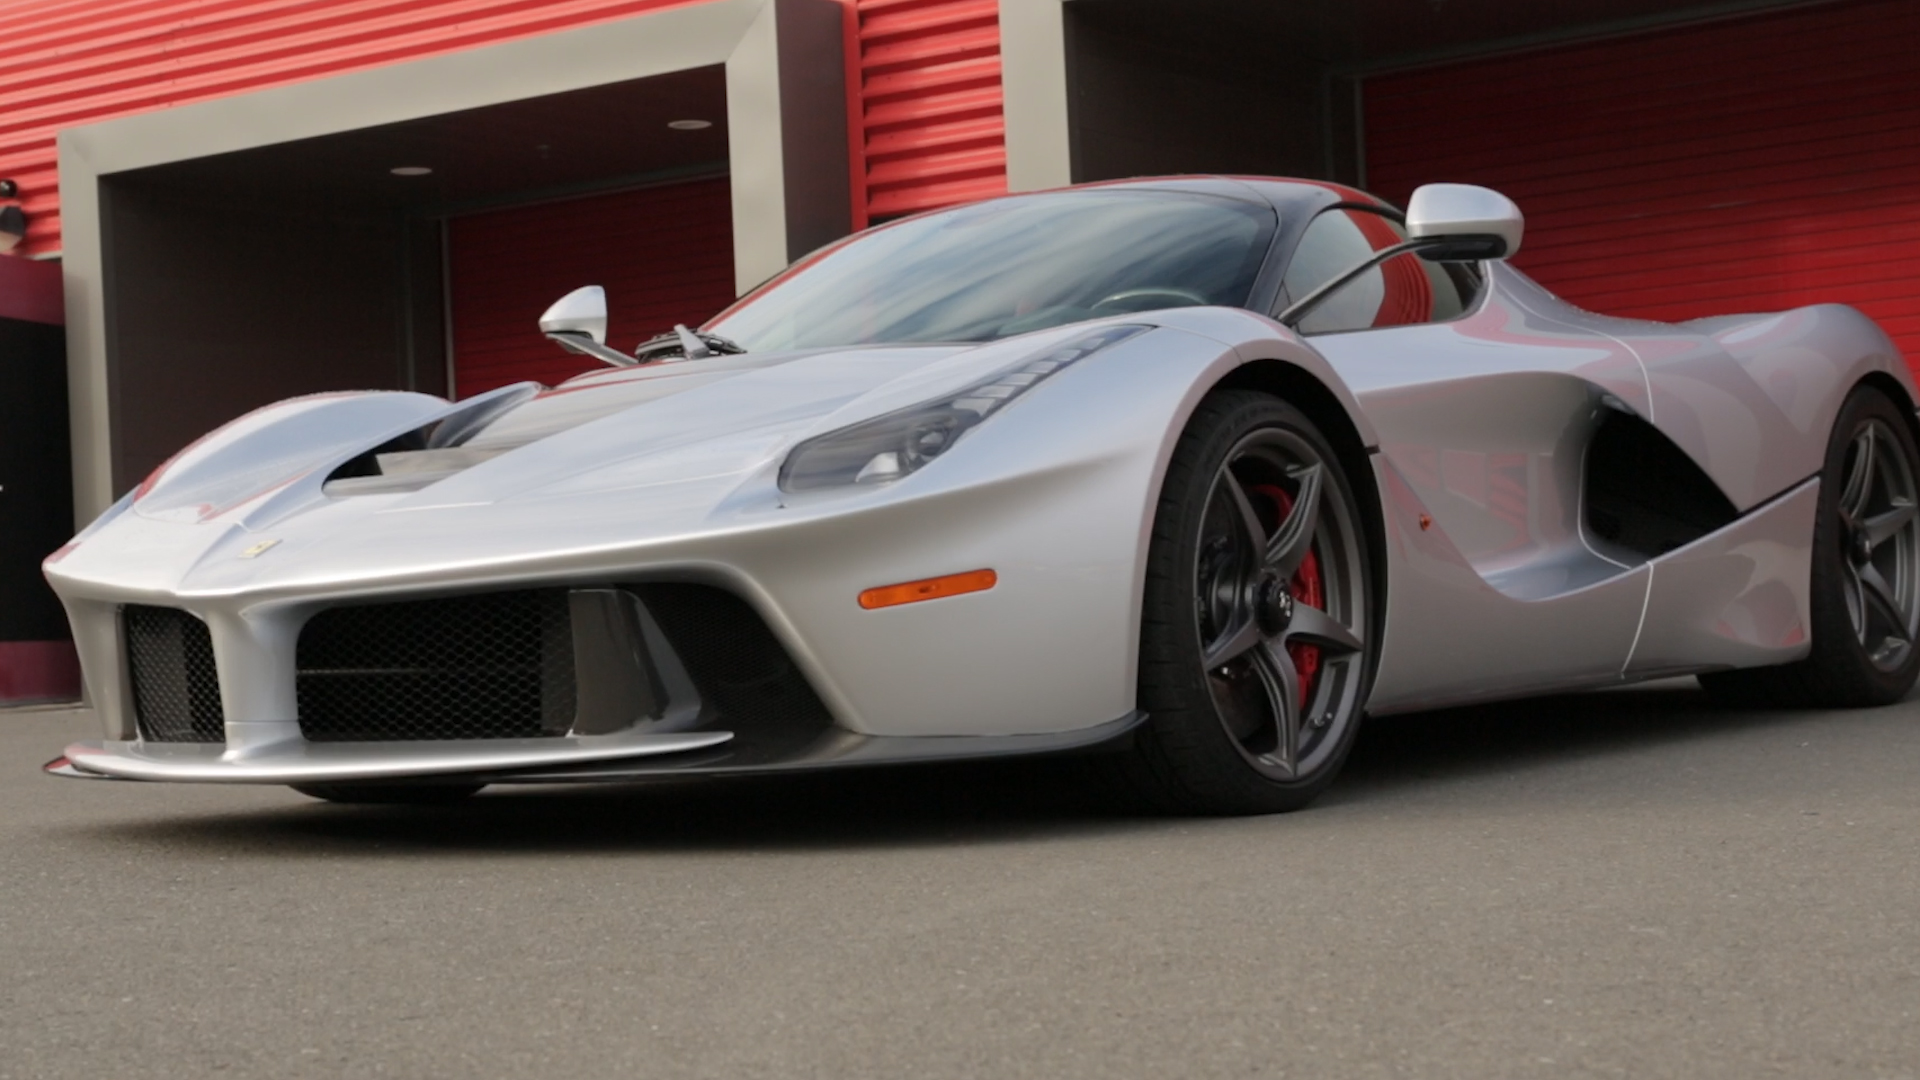 Video: Meet the LaFerrari, CNET style (CNET On Cars, Episode 82)